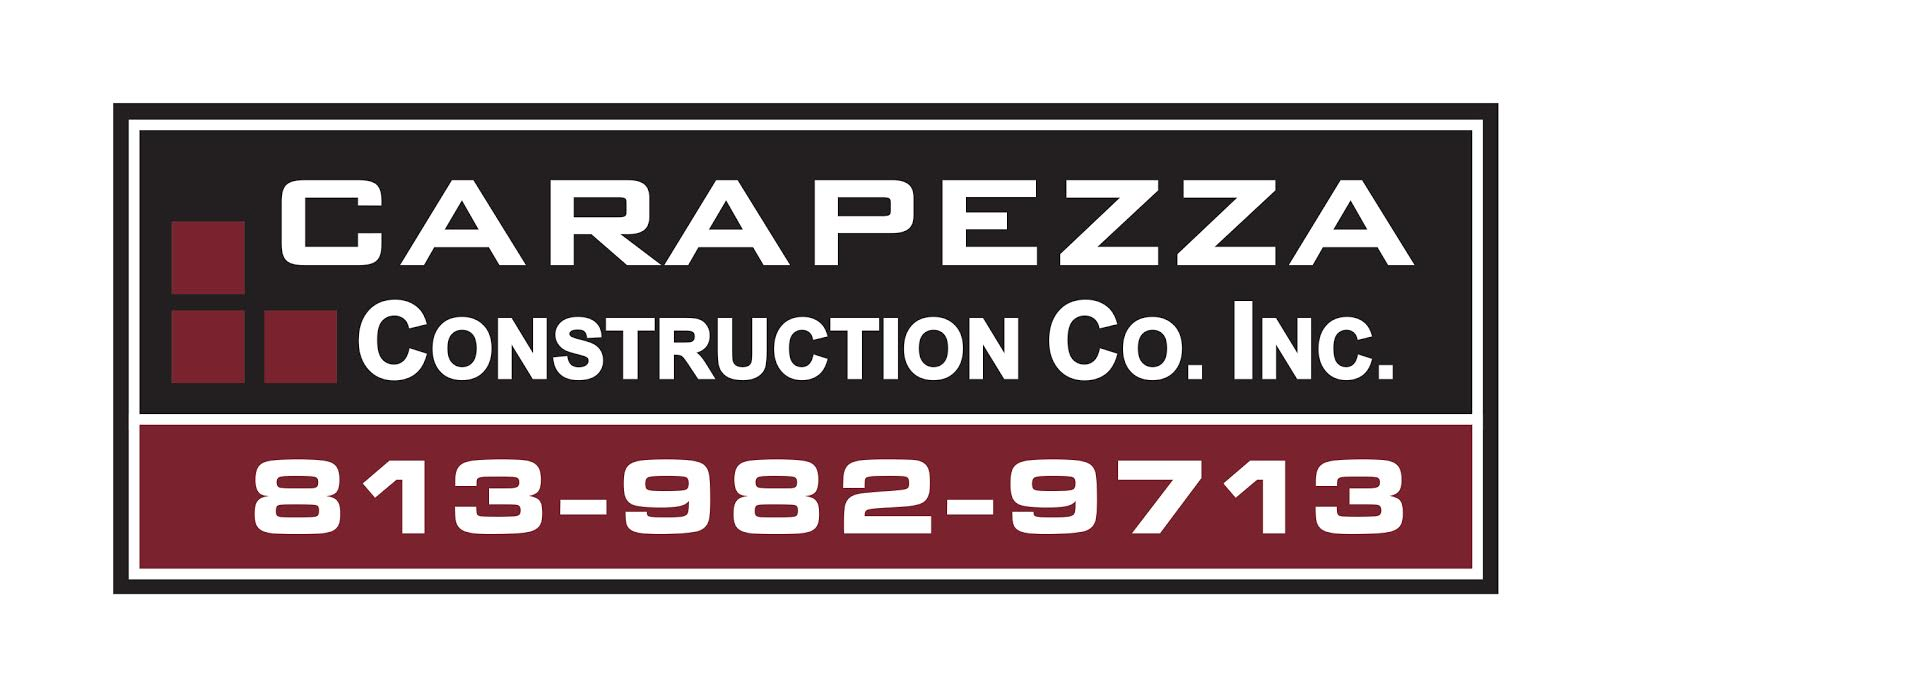 Carapezza Construction Co. Inc.